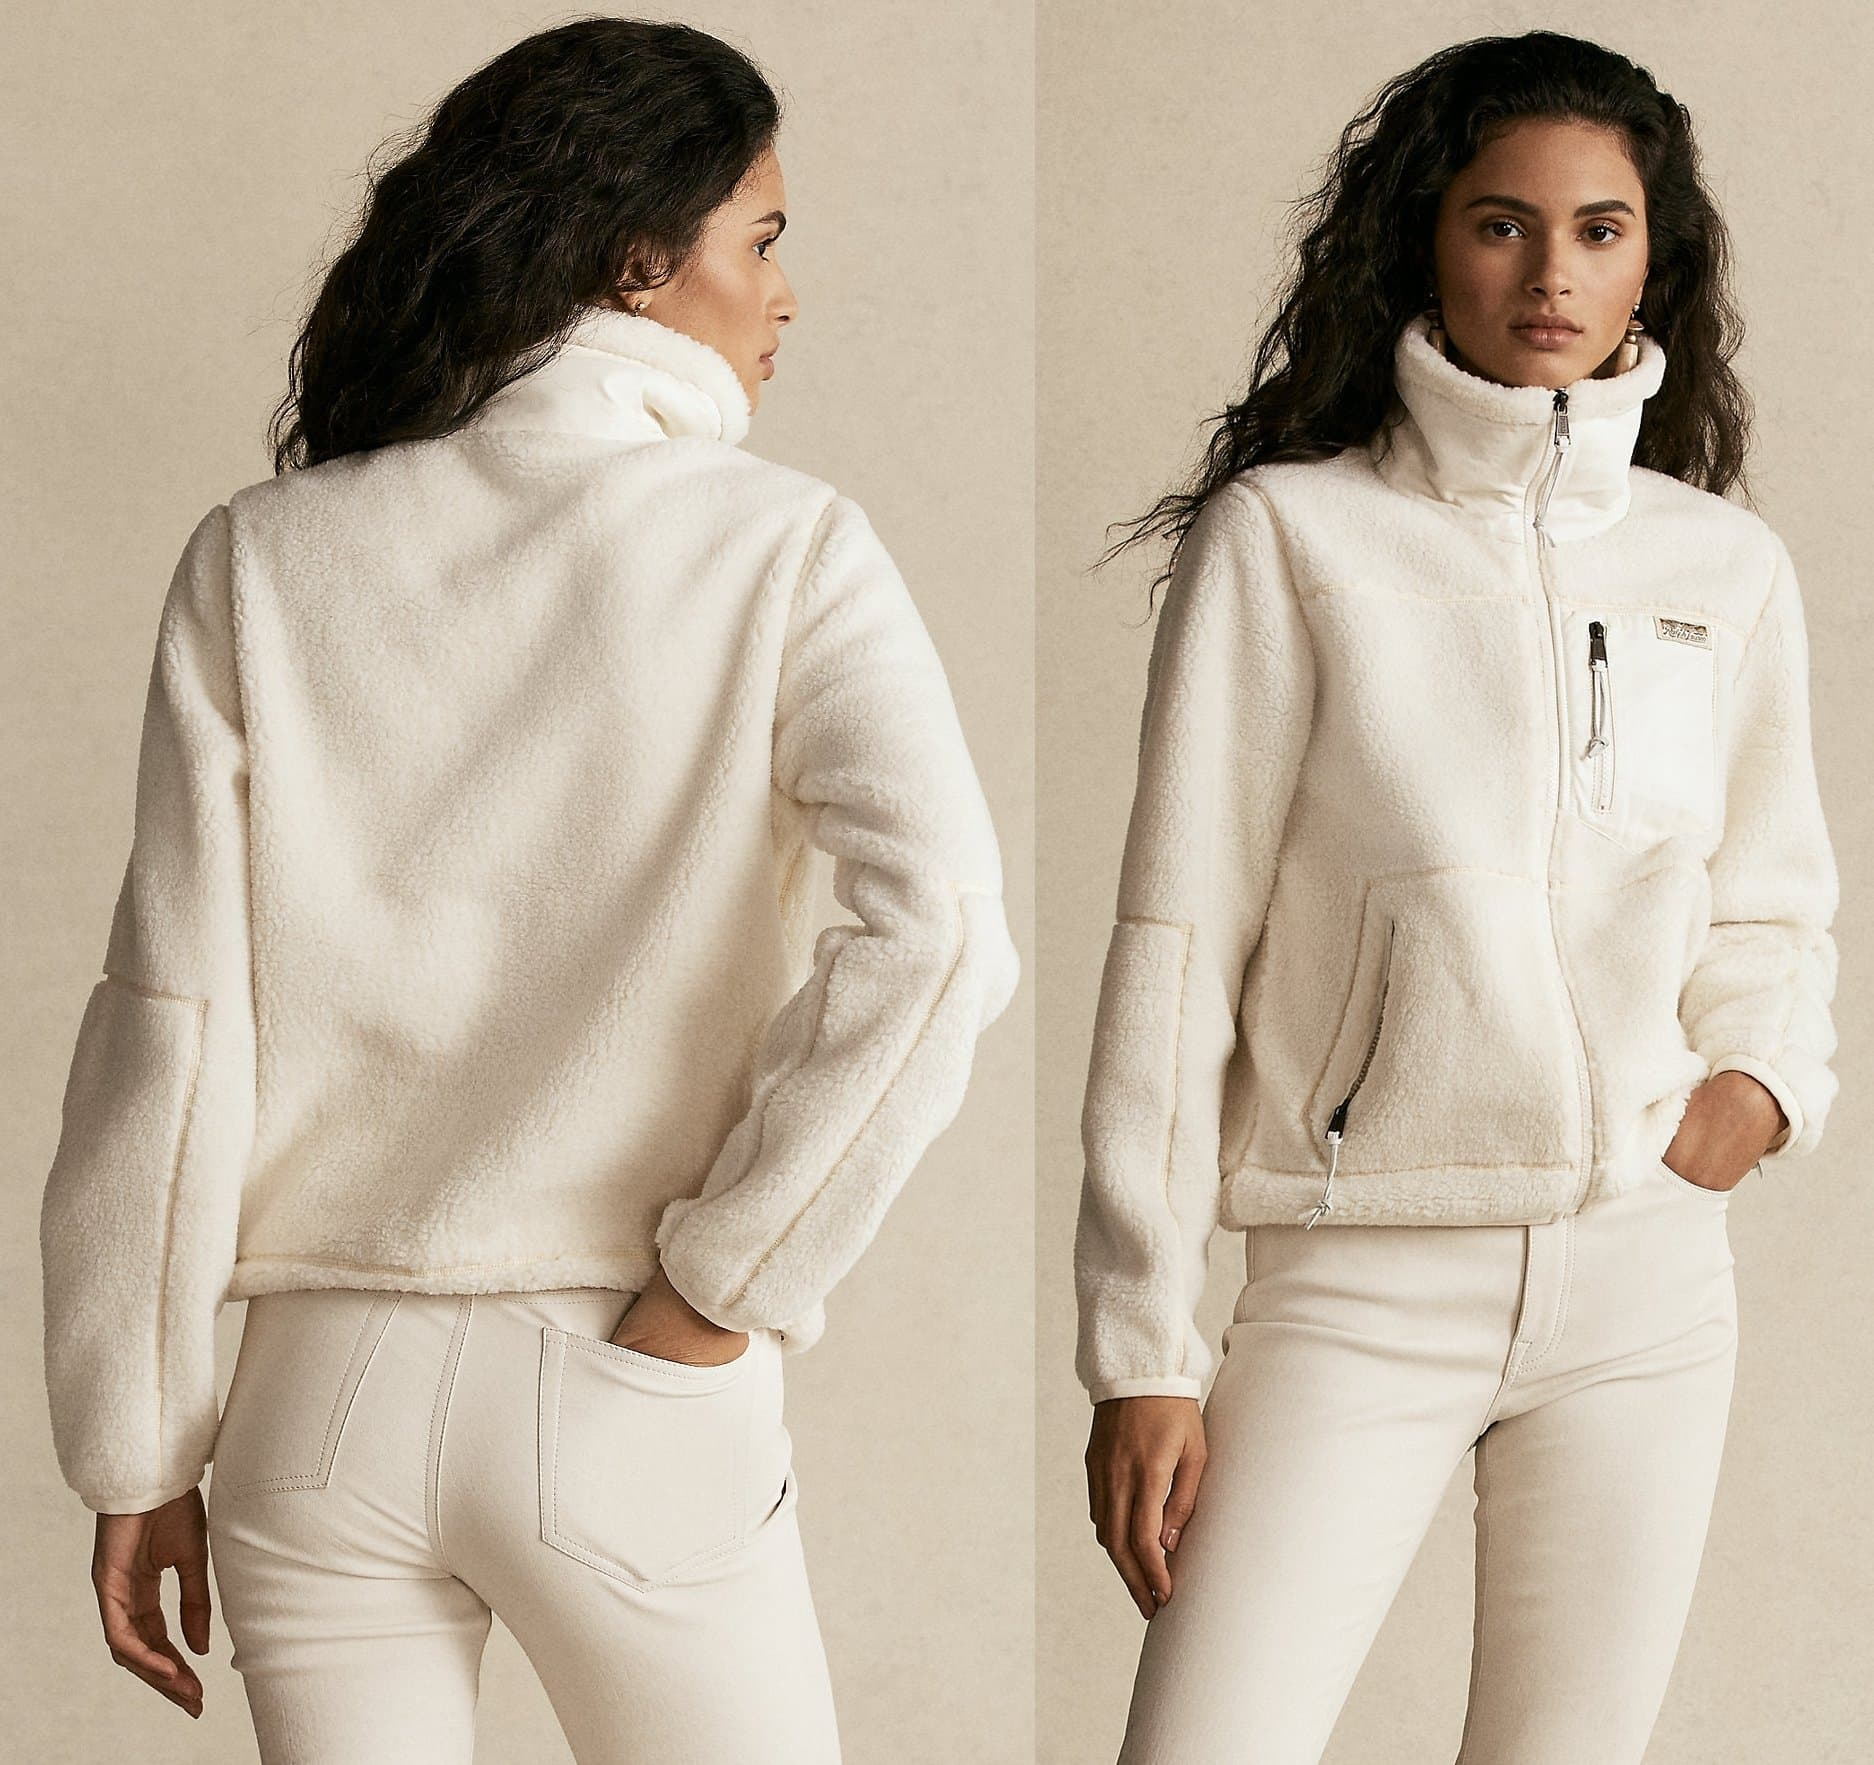 Supple sheepskin details the collar and pocketing of this full-zip jacket, which is crafted from plush fleece for premium softness and warmth